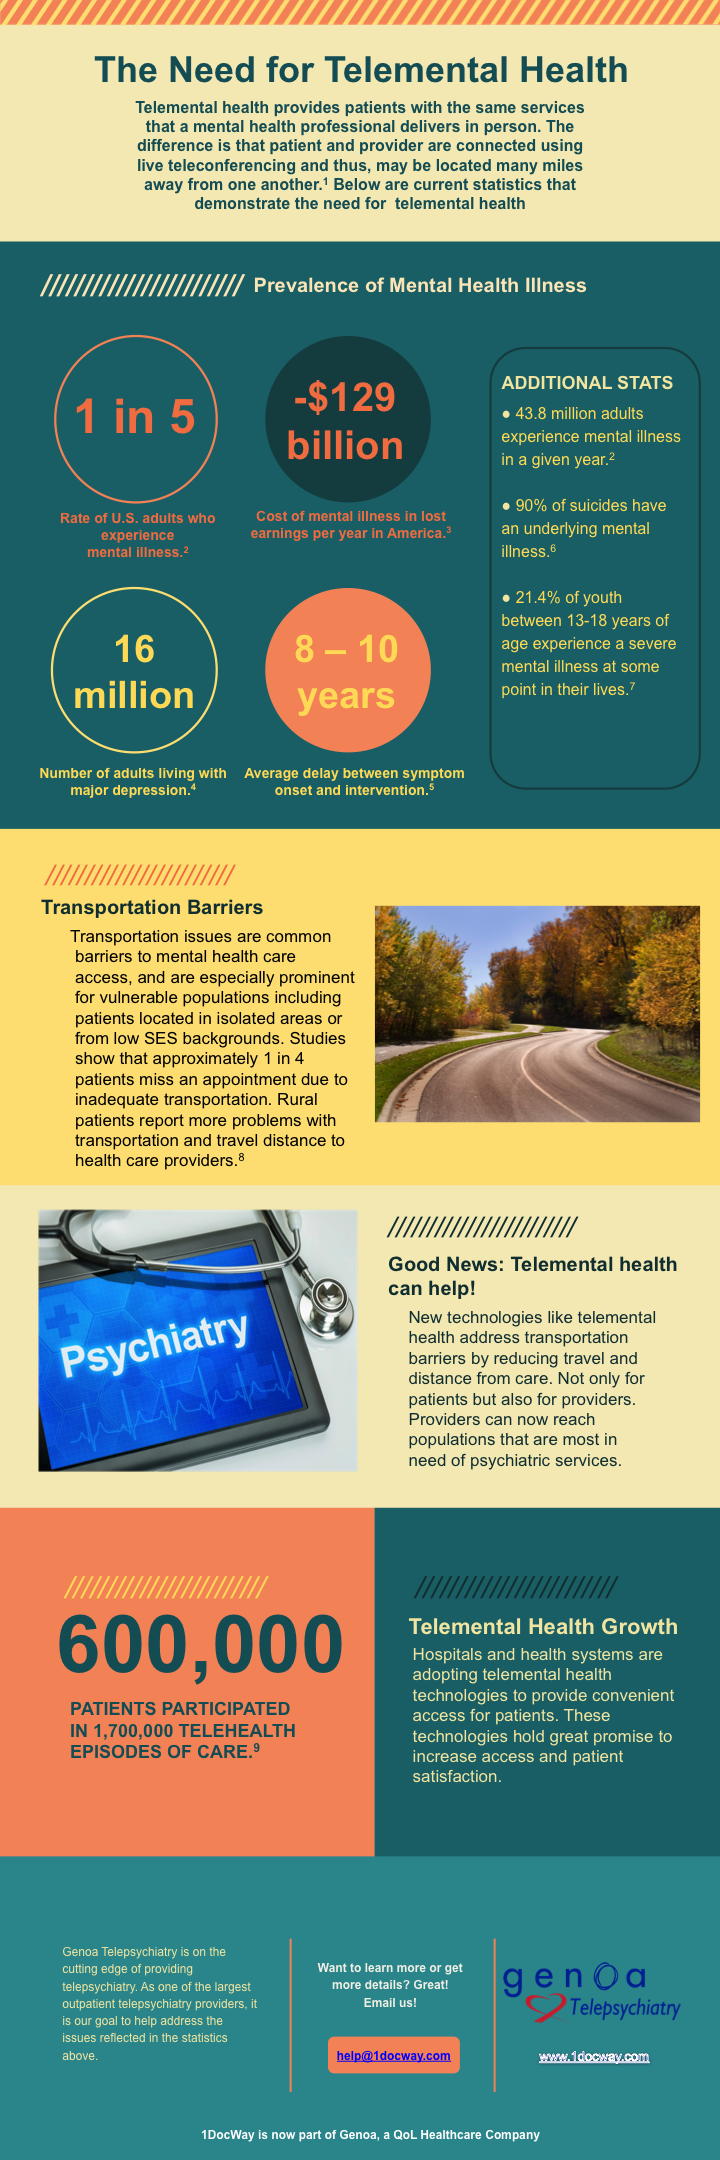 1.  Malhotra, S., Chakrabarti, S. & Shah, R., (2013). Telepsychiatry: Promise, potential, and challenges. Indian Journal of Psychiatry. 55(1), 3–11. Retrieved January 19, 2016 from http://www.ncbi.nlm.nih.gov/pmc/articles/PMC3574452/. 2. Any Mental Illness (AMI) Among Adults. (n.d.). Retrieved October 23, 2015, from http://www.nimh.nih.gov/health/statistics/prevalence/any-mental-illness-ami-among-adults.shtml 3. Insel, T.R. (2008). Assessing the Economic Costs of Serious Mental Illness. The American Journal of Psychiatry. 165(6), 663-665 4. Major Depression Among Adults. (n.d.). Retrieved January 16, 2016, from http://www.nimh.nih.gov/health/statistics/prevalence/major-depression-among-adults.shtml 5. Kessler, R.C., et al. (2005). Prevalence, Severity, and Comorbidity of 12-Month DSM-IV Disorders in the National Comorbitity Survey Replication. Archives of General Psychiatry, 62(6), 593–602. Retrieved January 16, 2016, from http://archpsyc.jamanetwork.com/article.aspx?articleid=208671 6. U.S. Department of Health and Human Services. (1999). Mental Health: A Report of the Surgeon General. Rockville, MD: U.S. Department of Health and Human Services, Substance Abuse and Mental Health Services Administration, Center for Mental Health Services, National Institute of Mental Health. Retrieved January 16, 2016, from http://profiles.nlm.nih.gov/ps/access/NNBBJC.pdf 7. Any Disorder Among Children. (n.d.) Retrieved January 16, 2016, from http://www.nimh.nih.gov/health/statistics/prevalence/any-disorder-among-children.shtml 8.  Williams, M., Pfeffer, M., & Boyle, J.. (2009). Telepsychiatry in the Emergency Department: Overview and Case Studies. Retrieved January 19, 2016, from http://www.hasc.org/sites/main/files/file-attachments/telepsychiatryprogramsed.pdf 9. American Hospital Association. (2015). The Promise of Telehealth for Hospitals, Health Systems and Their Communities. Retrieved January 16, 2016, from http://www.aha.org/research/reports/tw/15jan-tw-telehealth.pdf